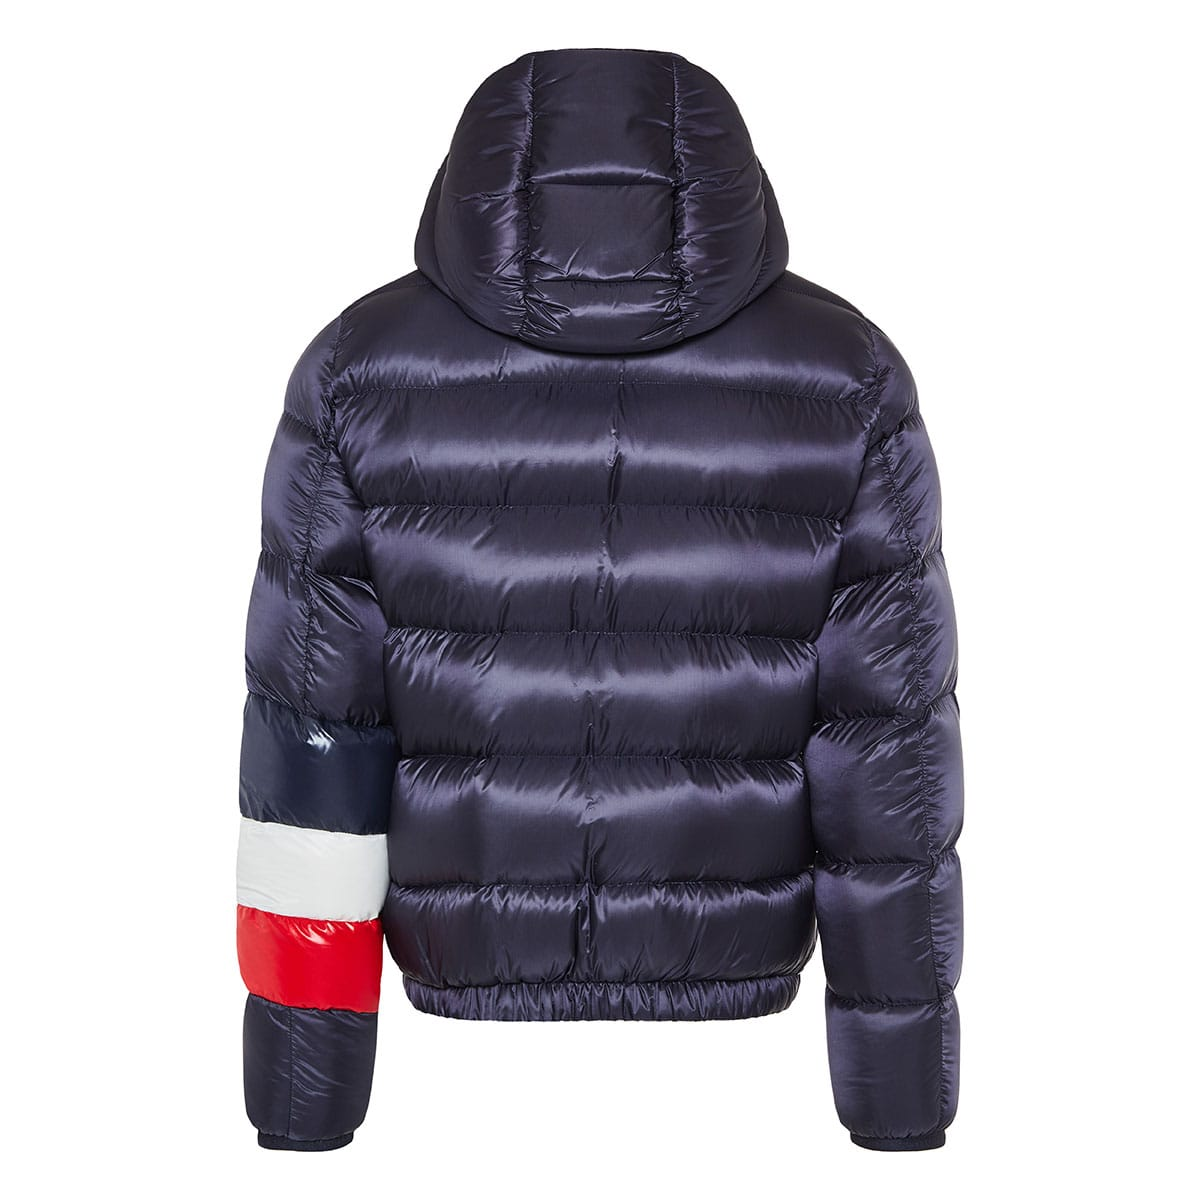 Willm down quilted jacket